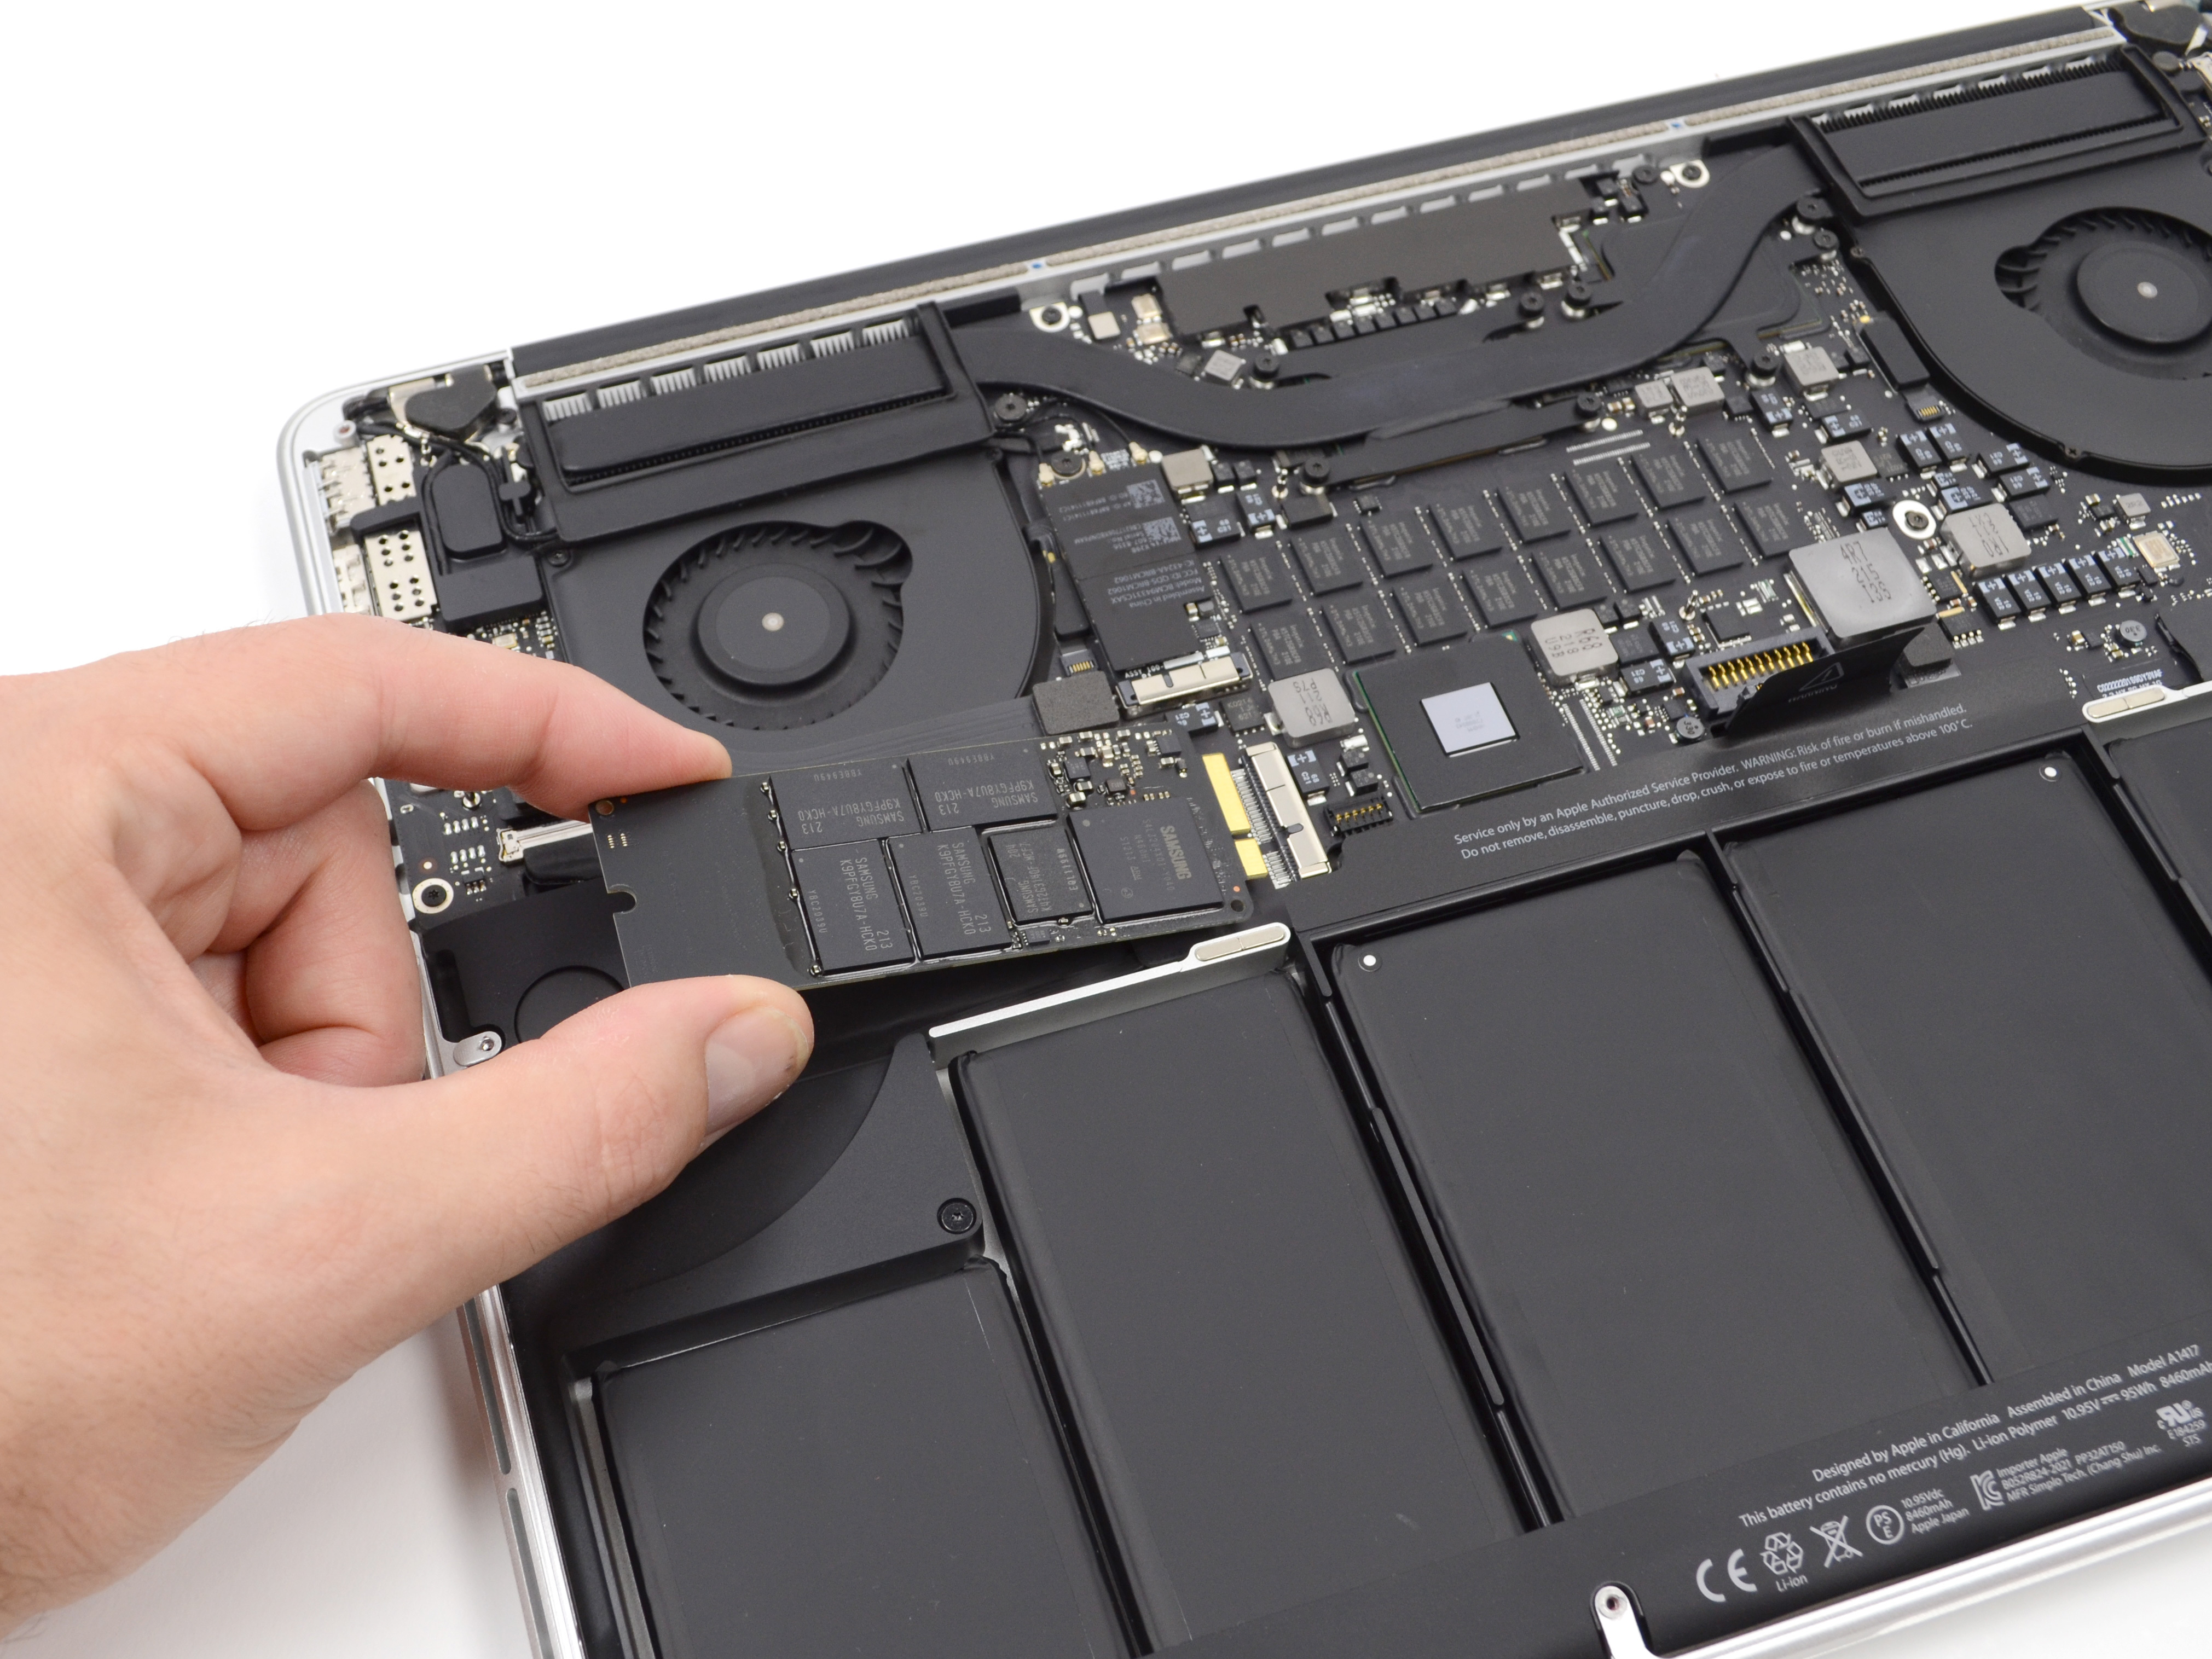 Longhorn Mac Repair – We Fix Apple Products for Less